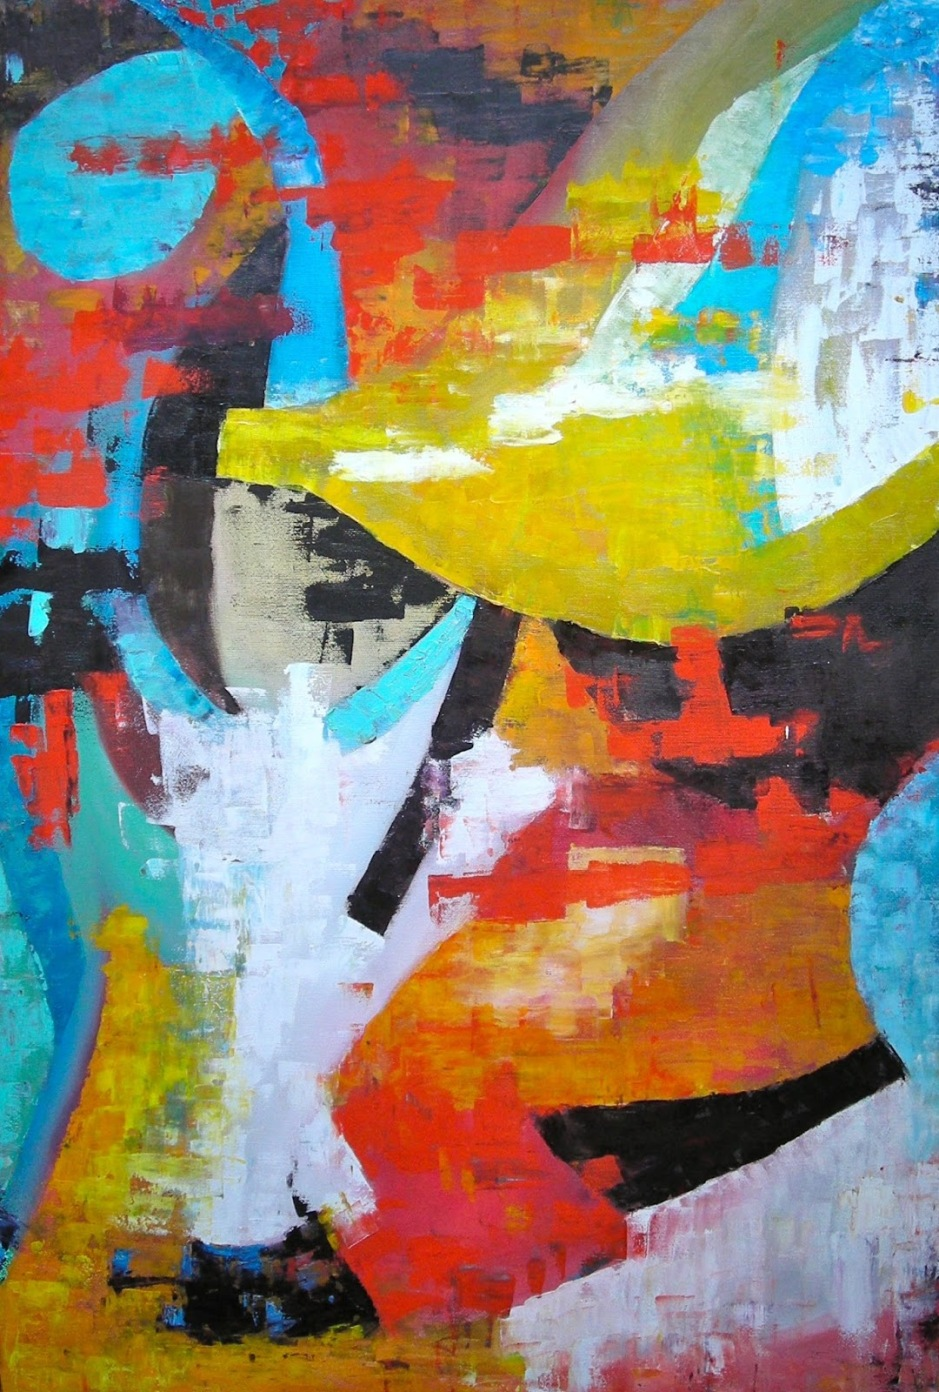 Lady with hat - oil on canvas 60 x 90